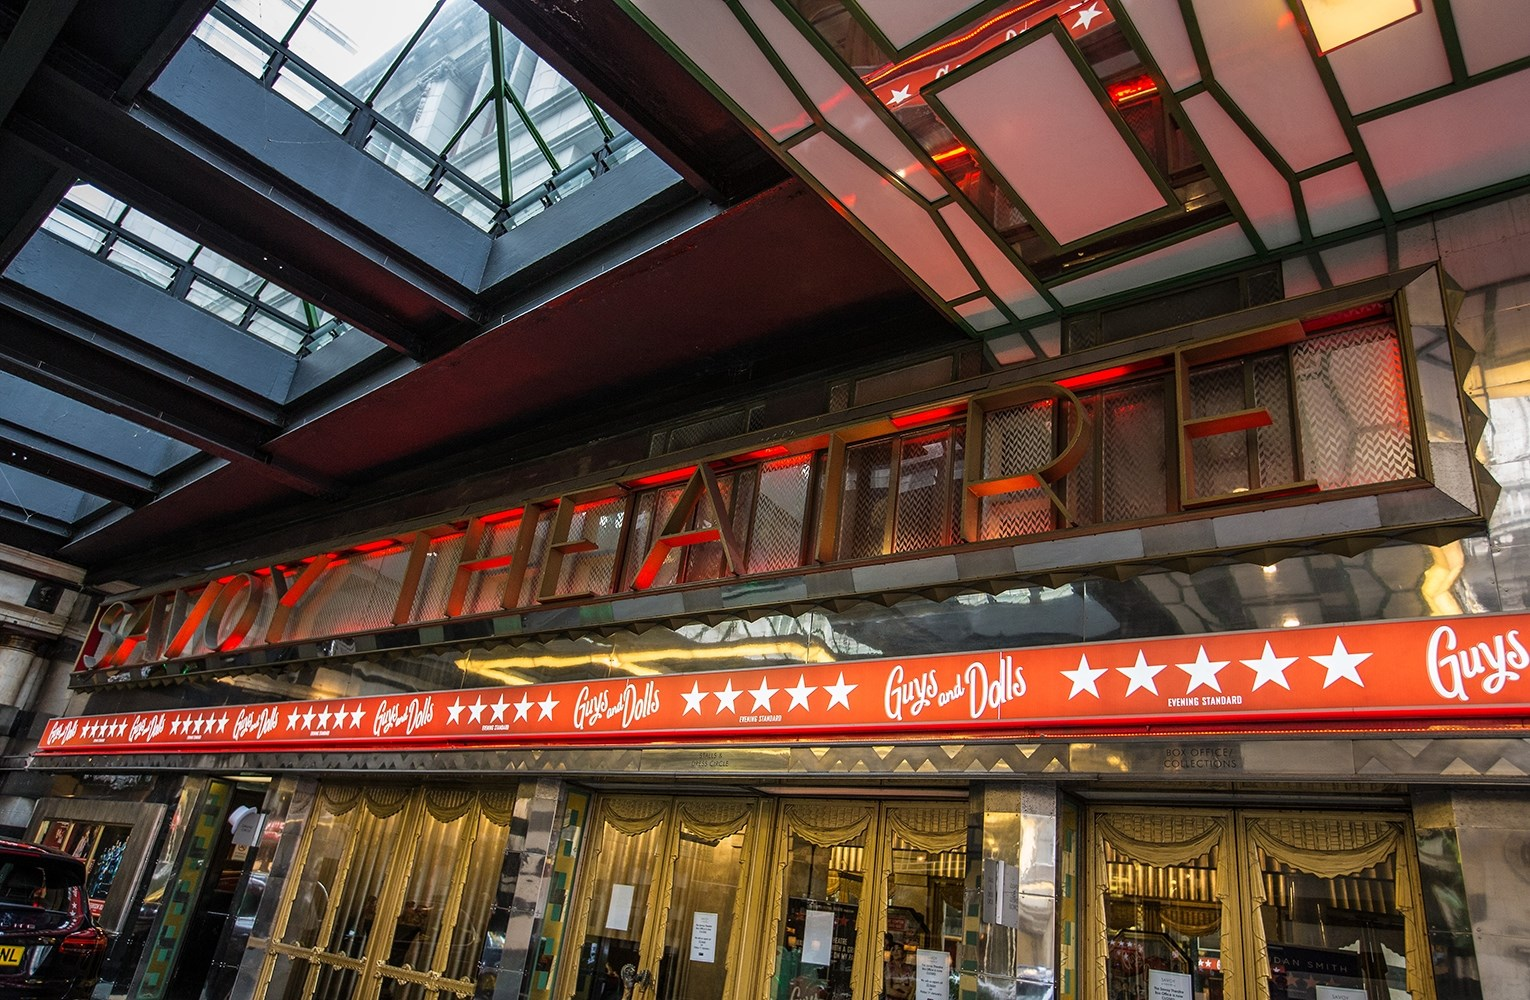 The sidewalk canopy of the Savoy Theatre in London, UK